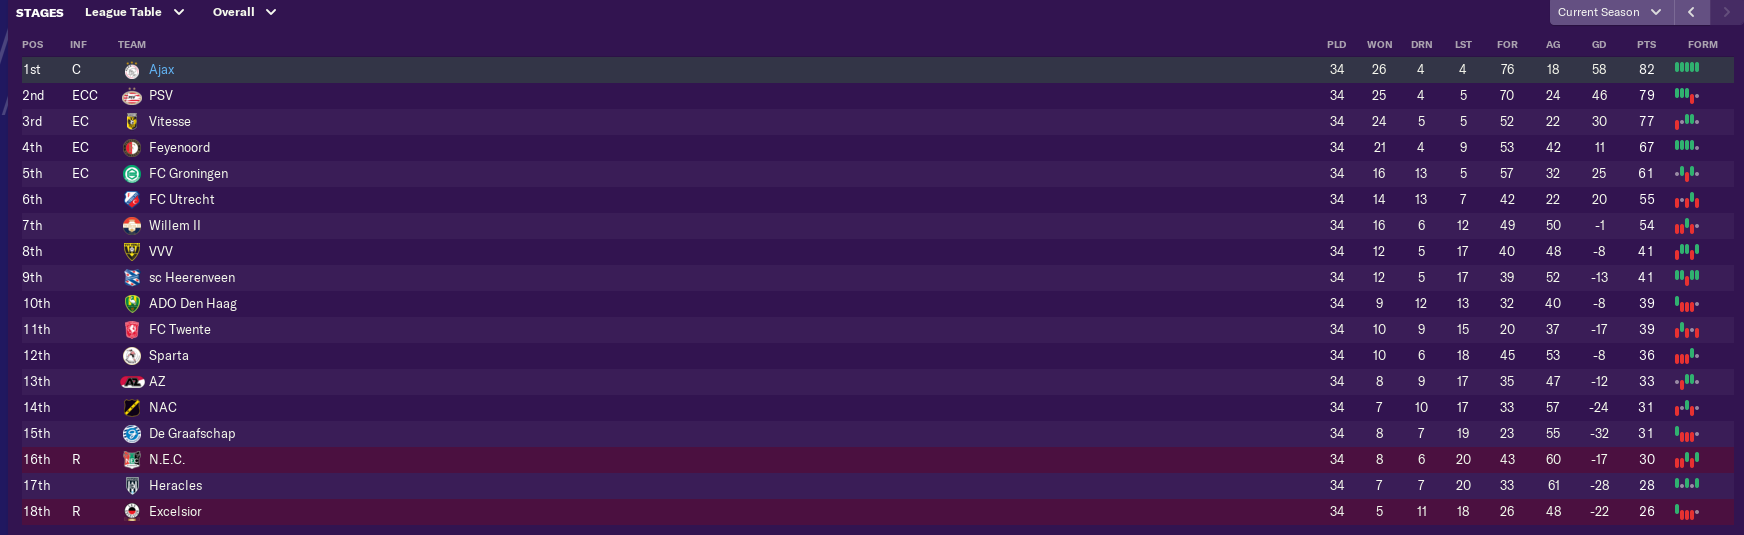 may-league-table.png